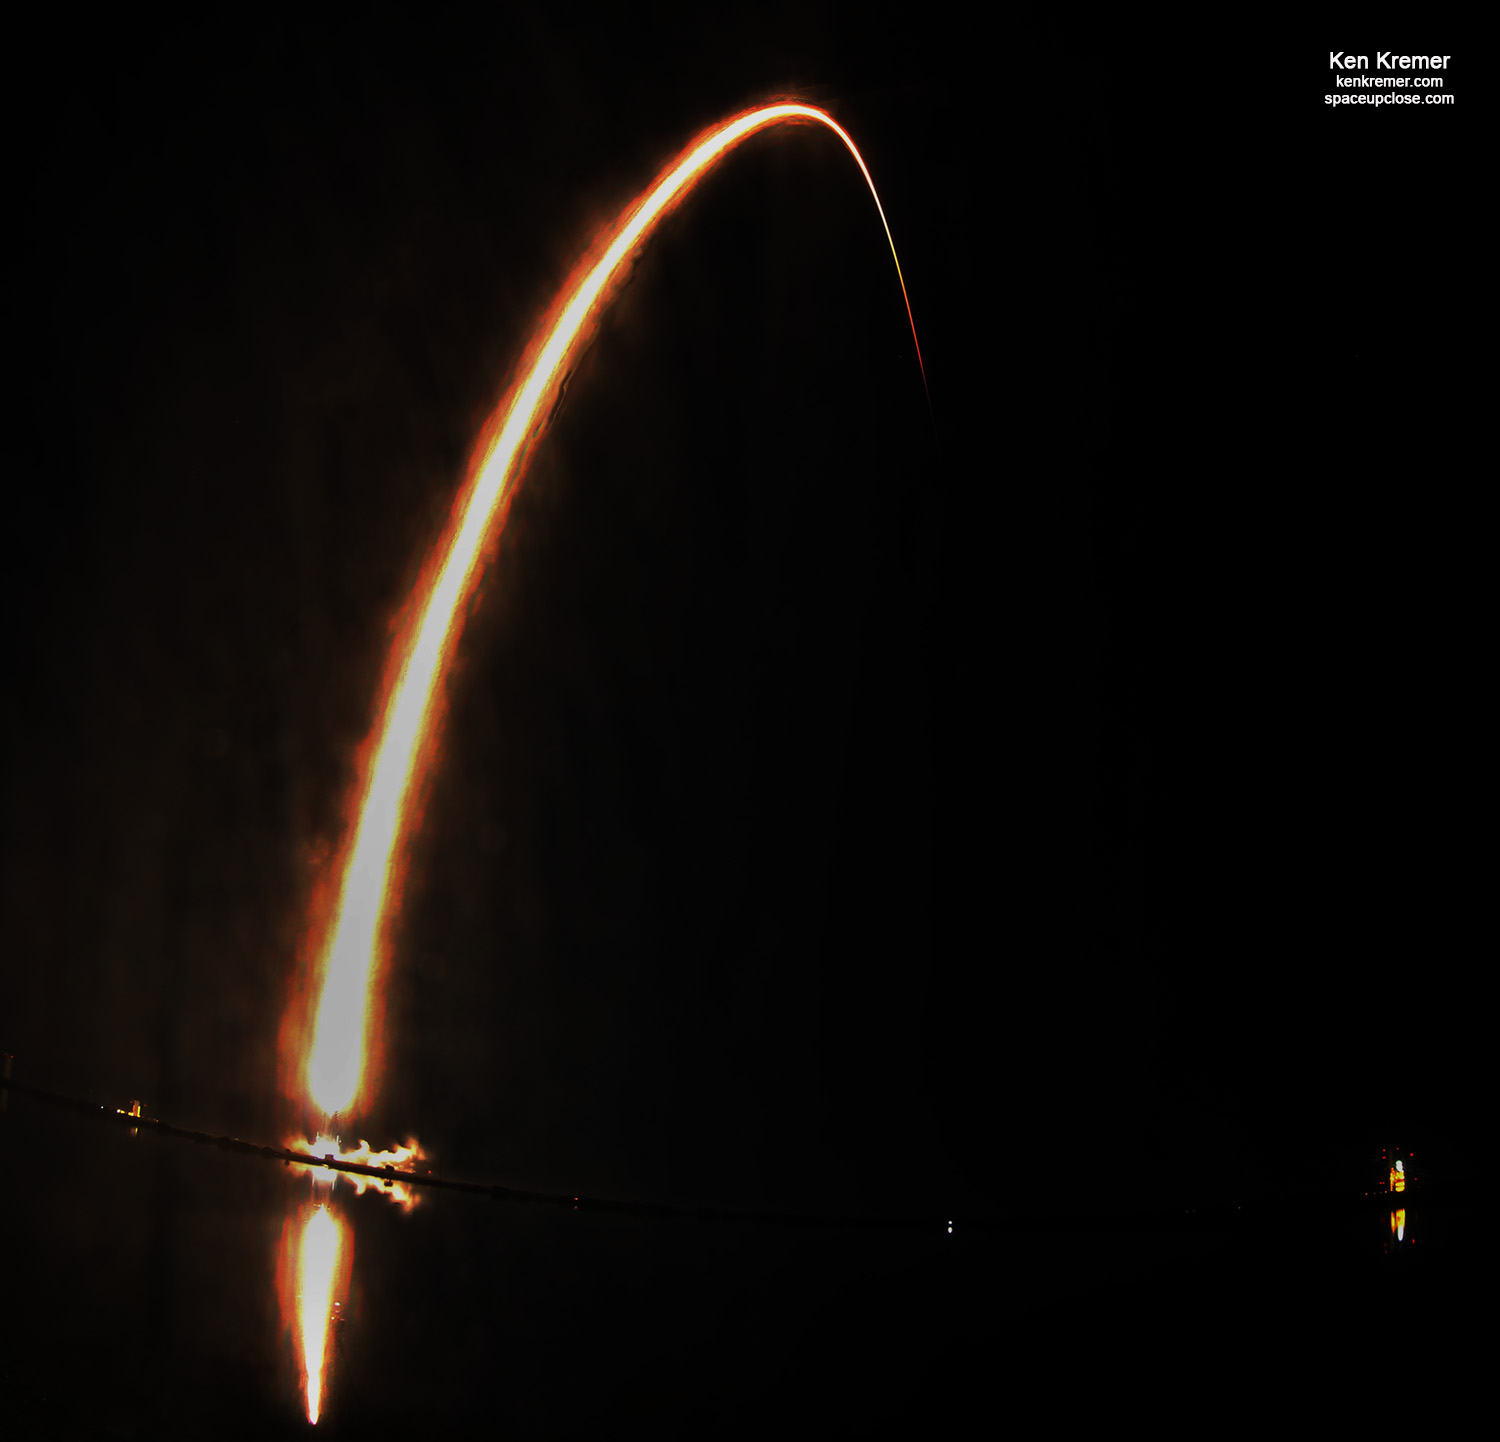 1st Launch of 2020 Streaks to Orbit with 3rd Set of SpaceX Starlink Satellites, Booster Lands